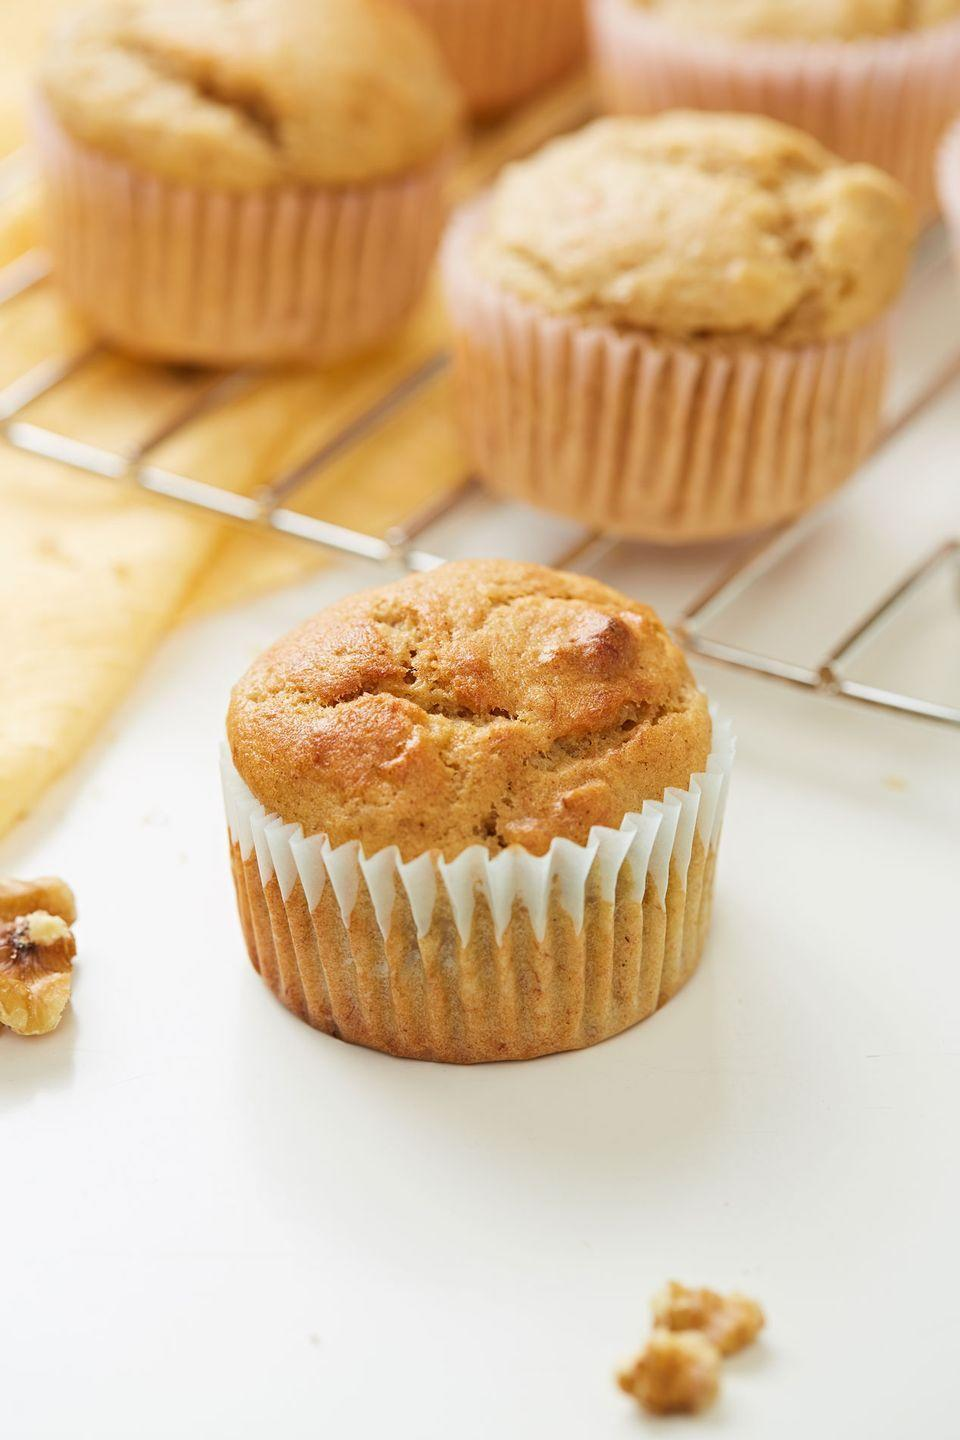 "<p>These are a great way to start your morning.</p><p>Get the recipe from <a href=""https://www.delish.com/cooking/recipe-ideas/a32936759/banana-nut-muffins-recipe/"" rel=""nofollow noopener"" target=""_blank"" data-ylk=""slk:Delish"" class=""link rapid-noclick-resp"">Delish</a>.</p>"